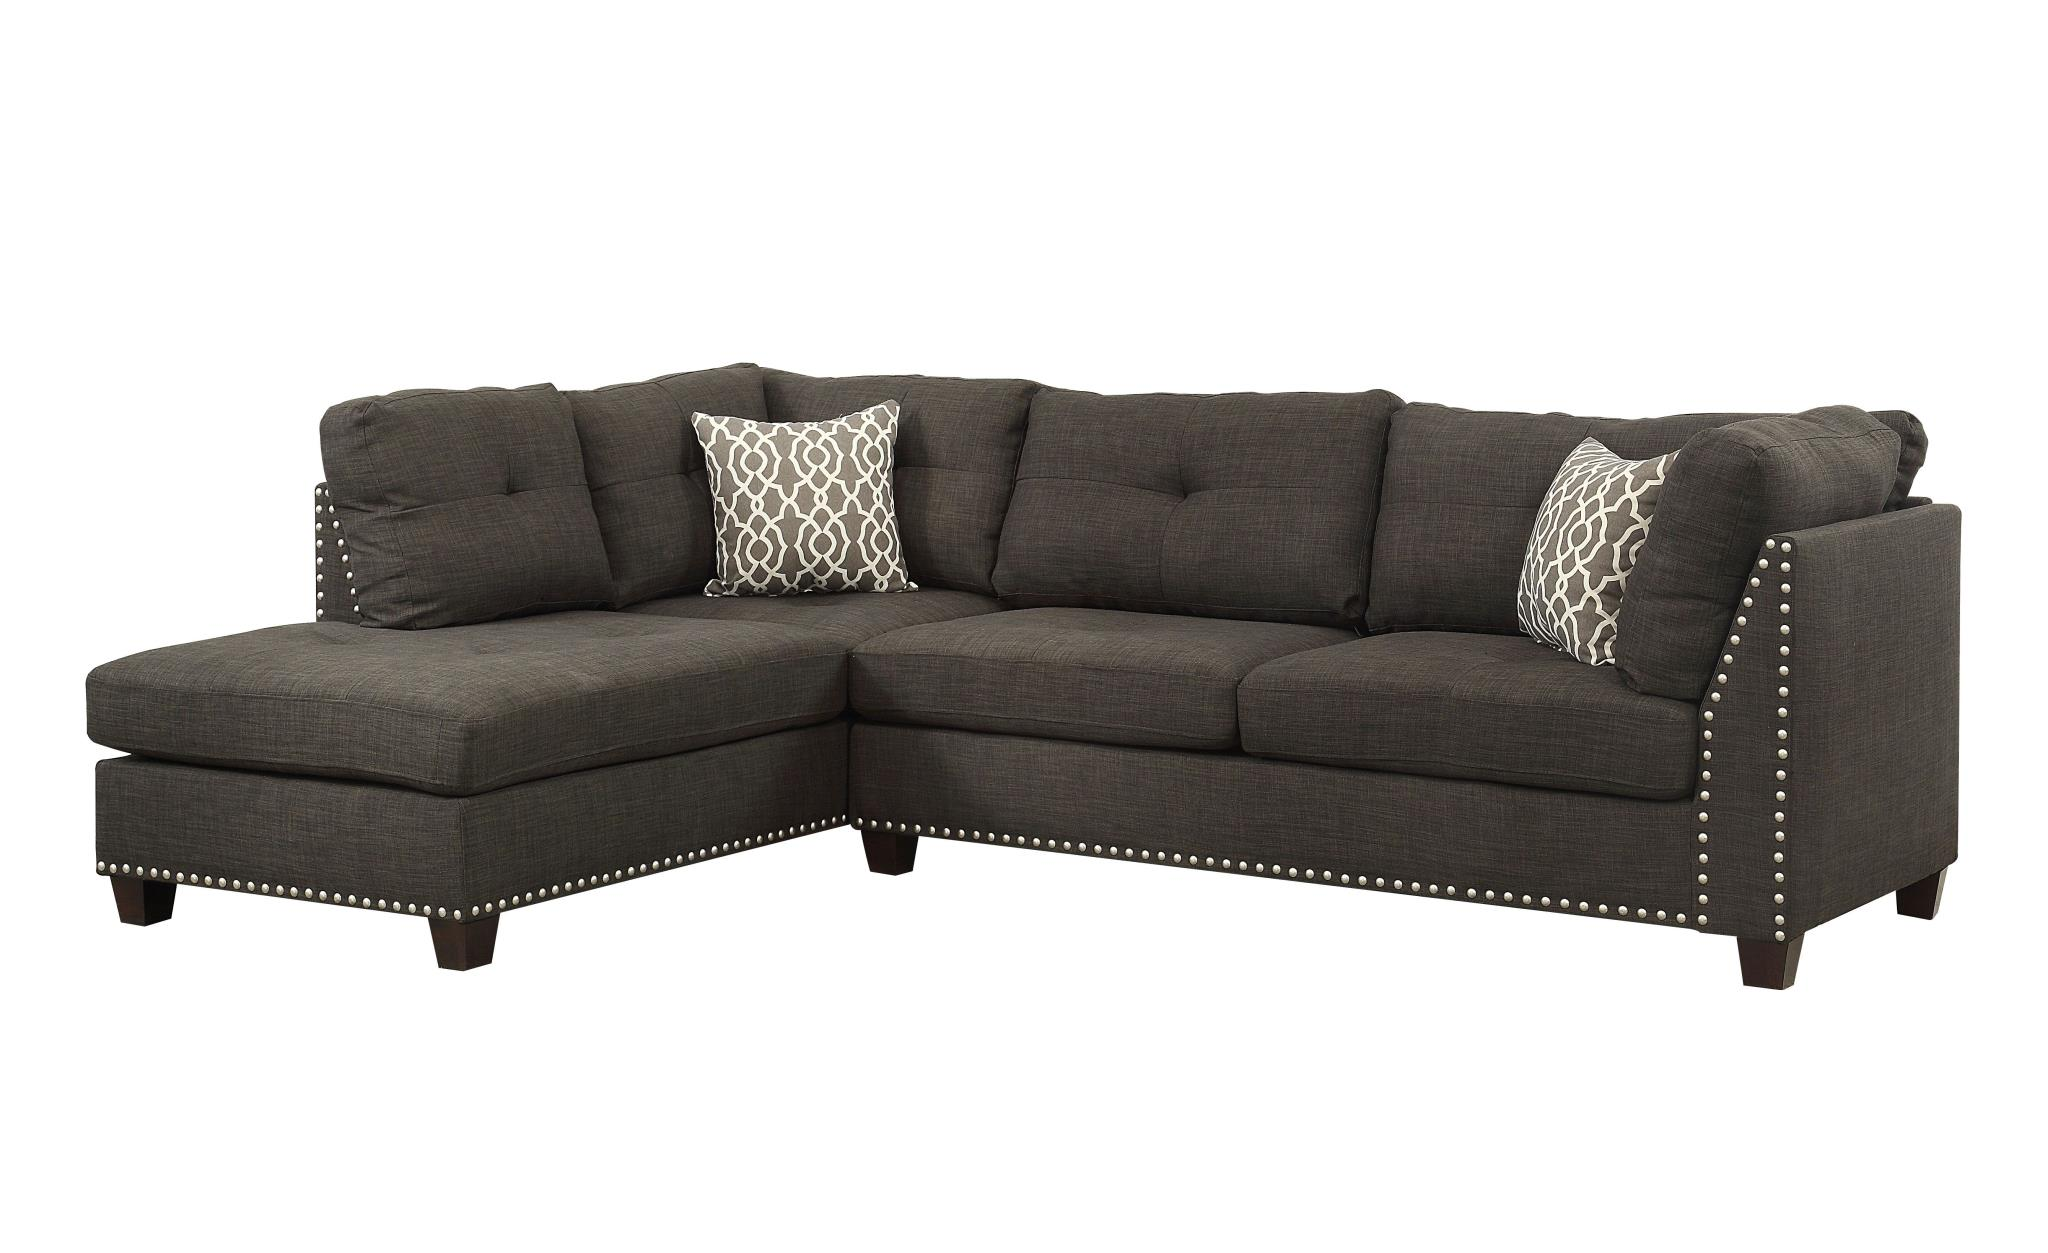 Sectional Sofa w/ Left Facing Chaise Angle